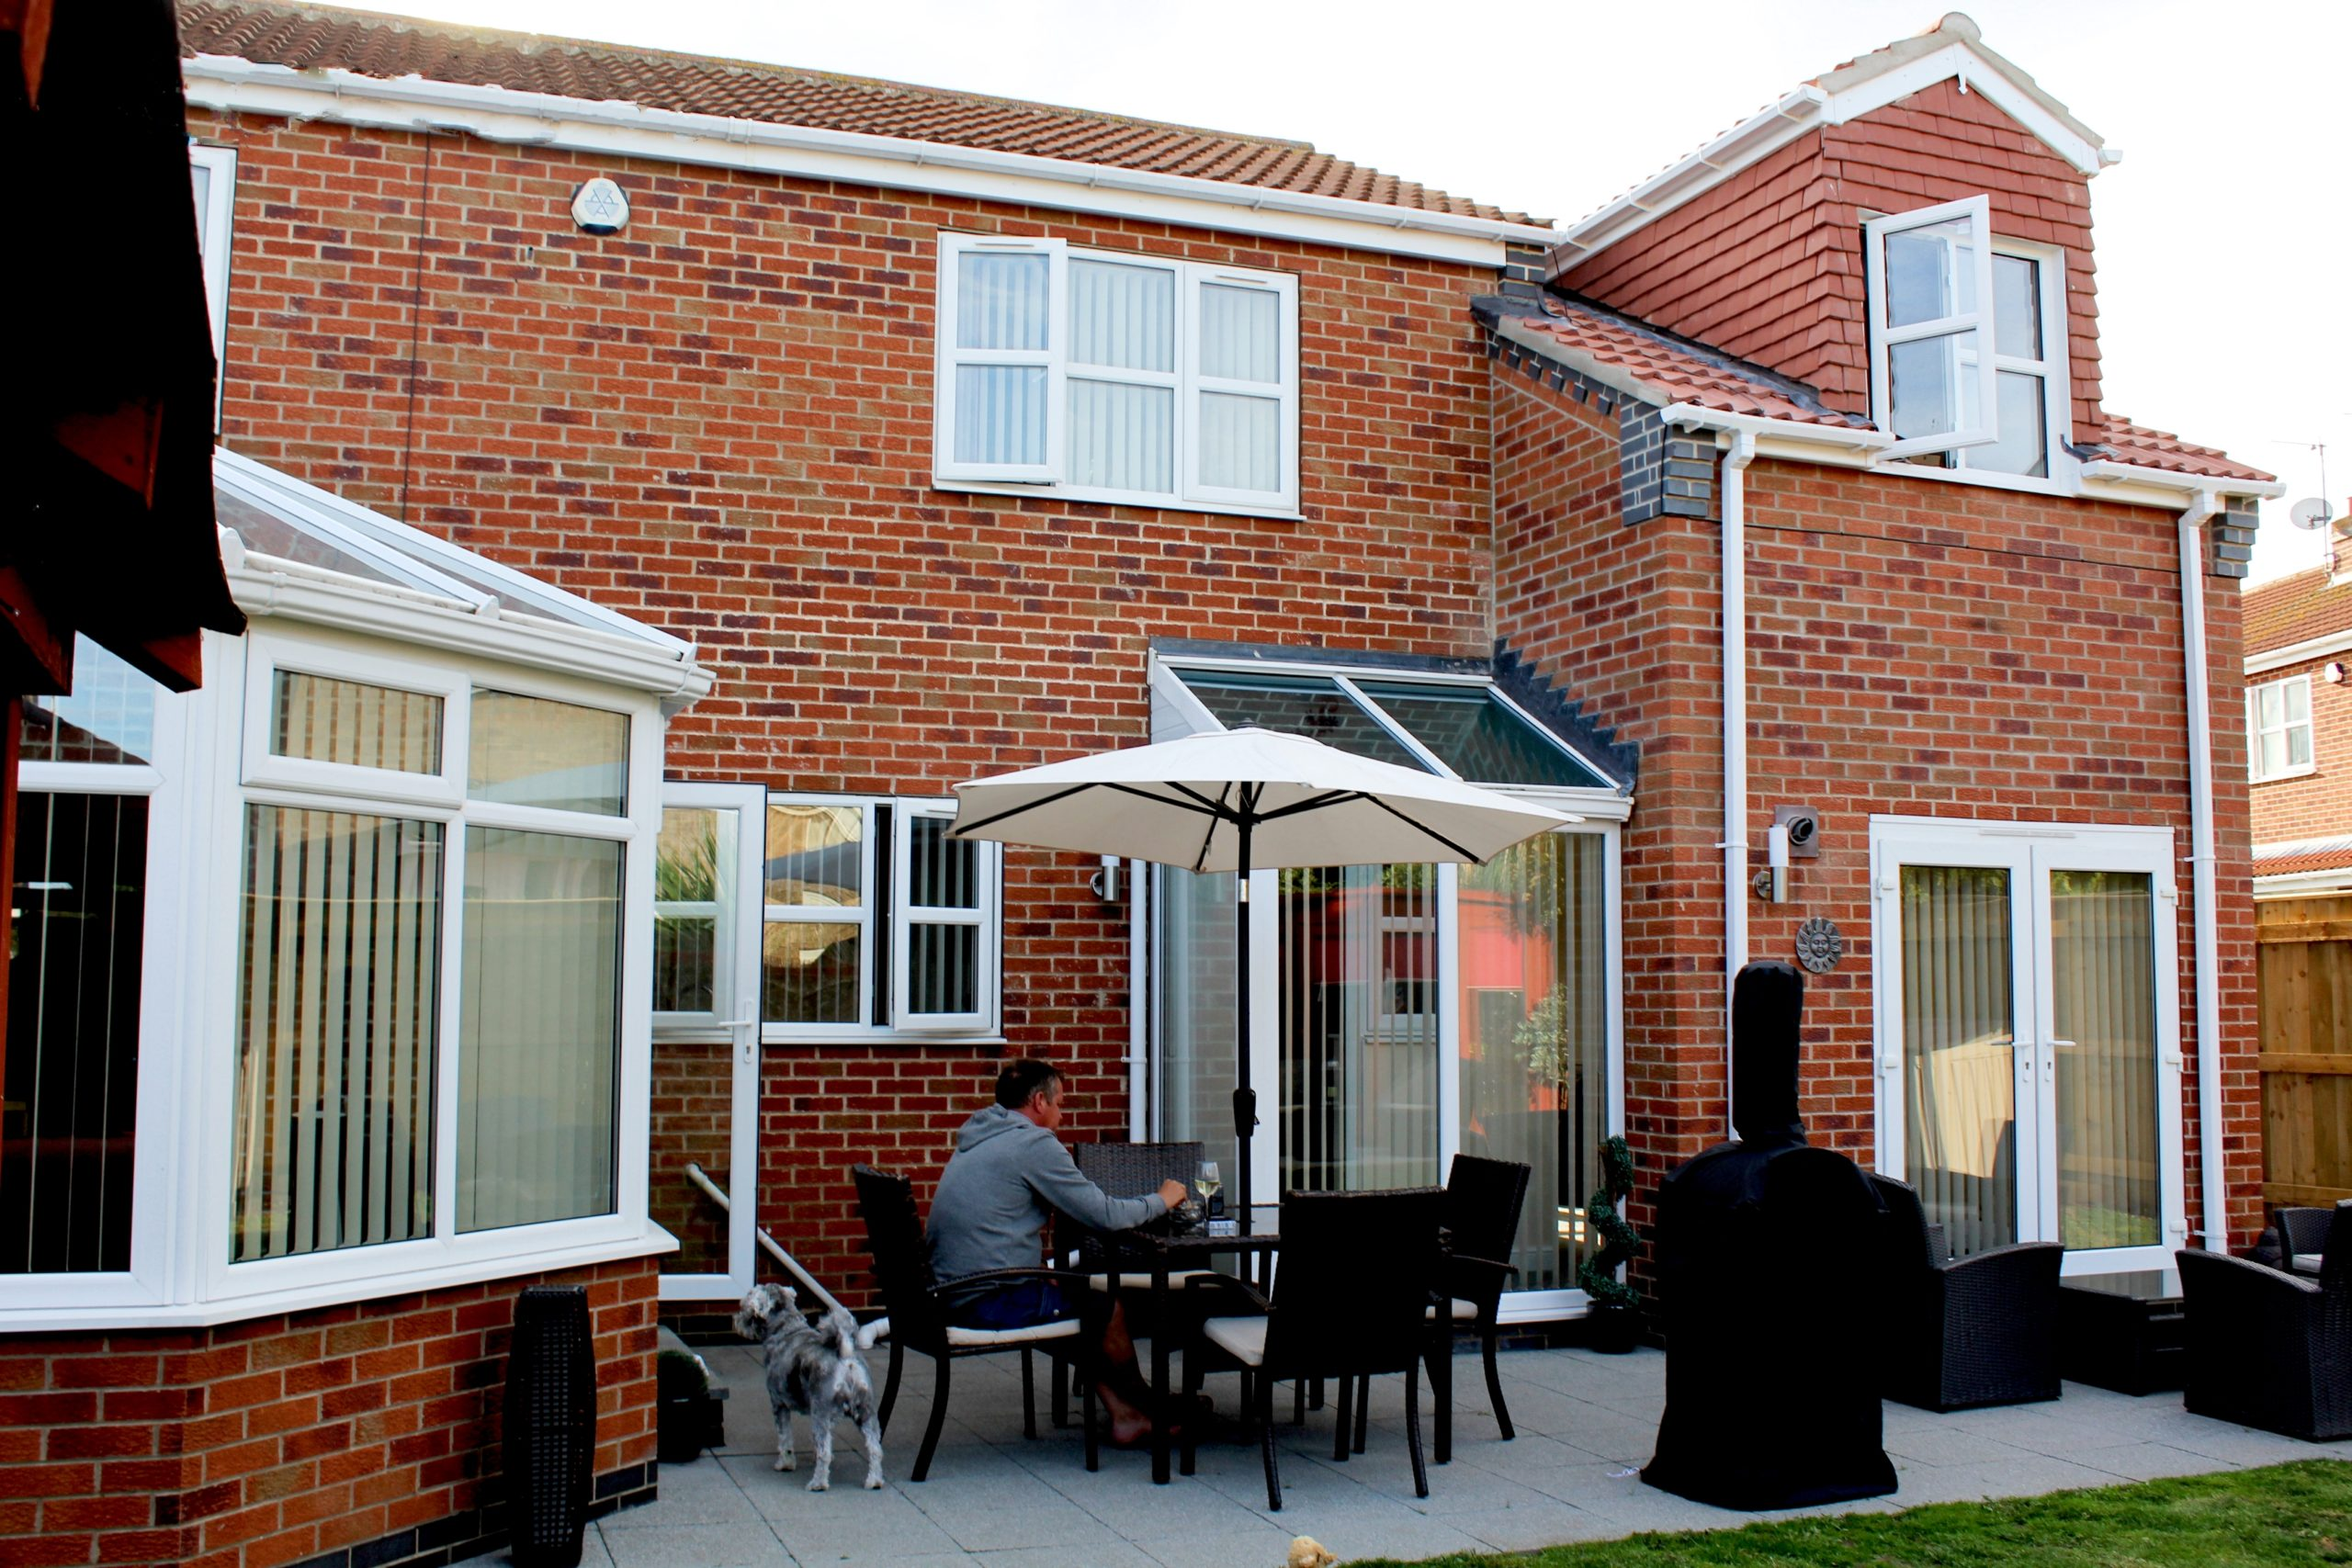 Garden view of double storey extension